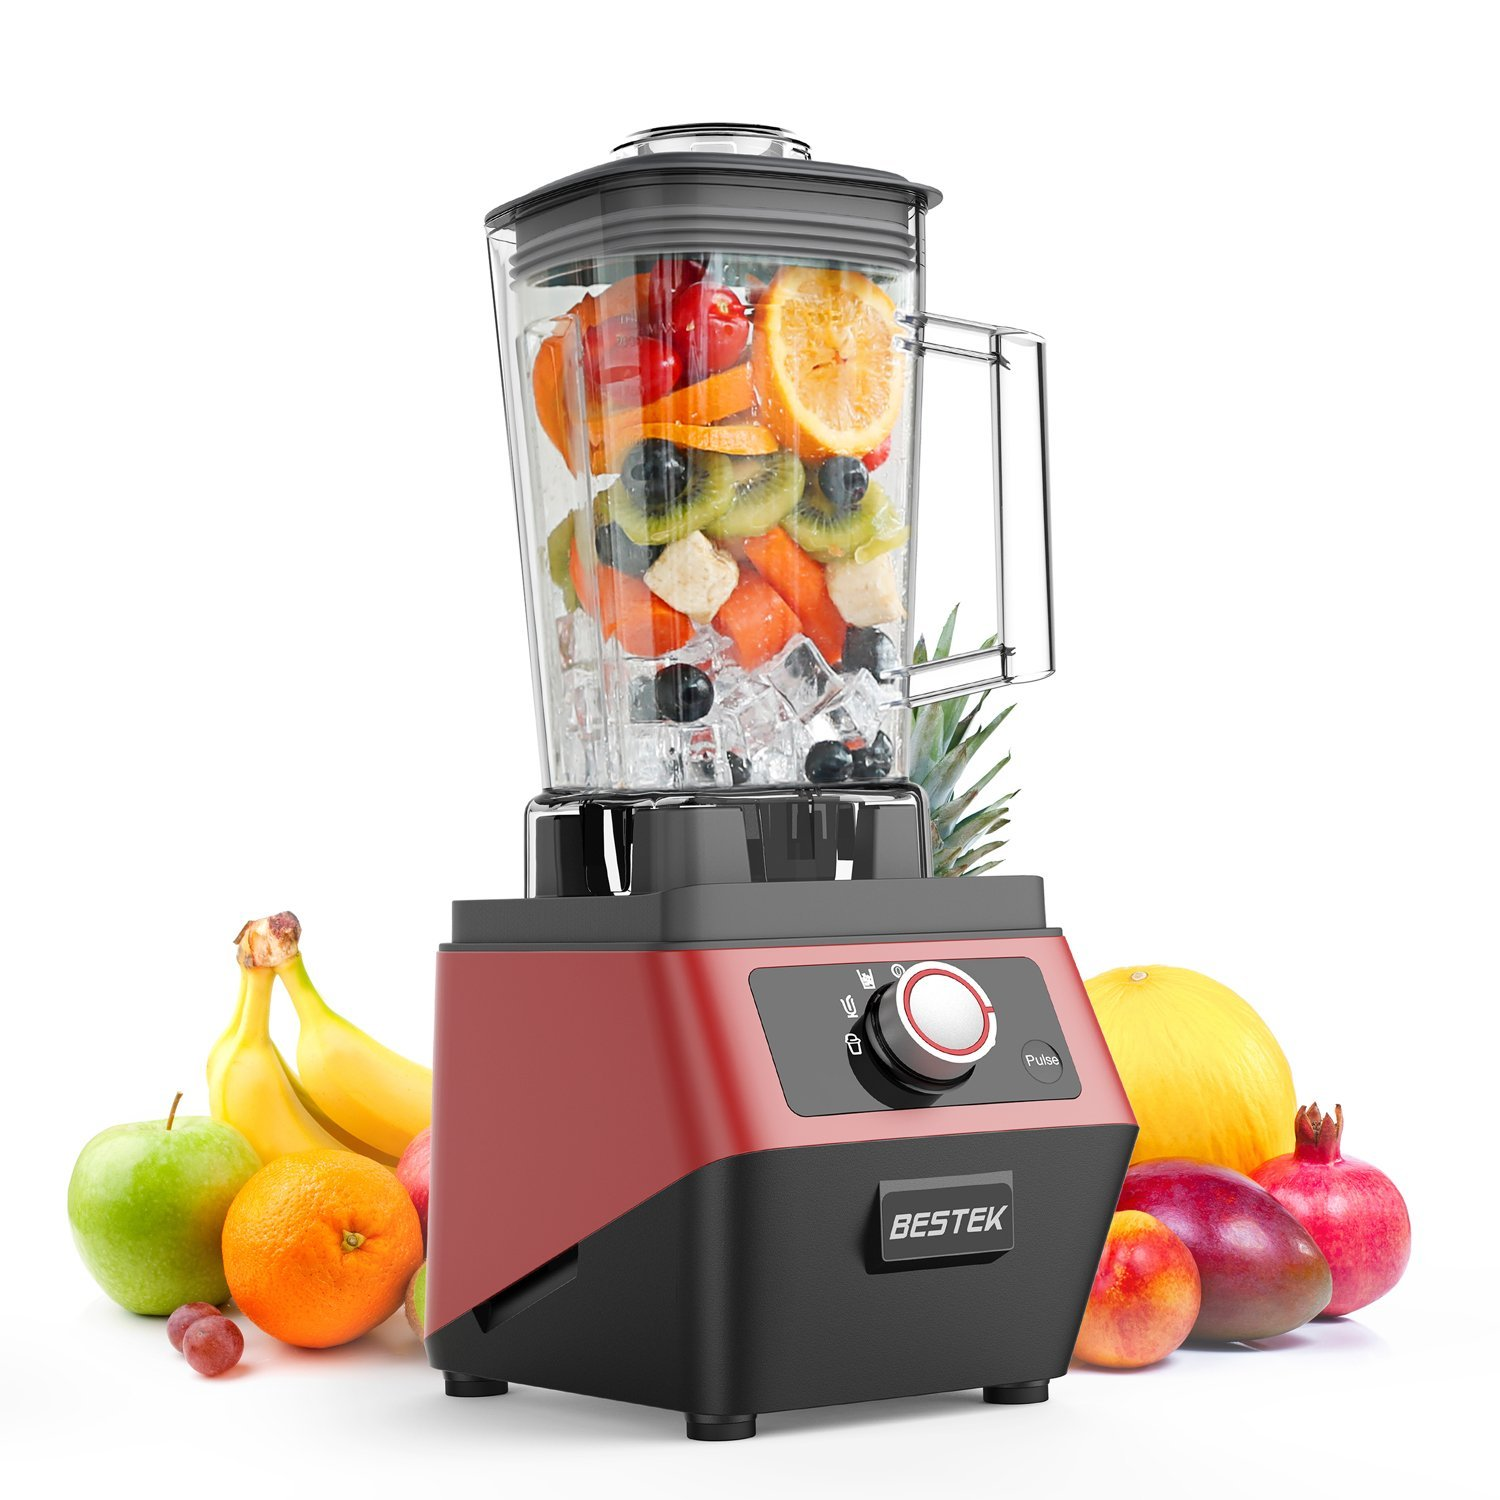 BESTEK Commercial Blender,1400W 30000RPM High Speed Smoothie Blender with 2L BPA-Free Tritan Pitcher, Food Processor